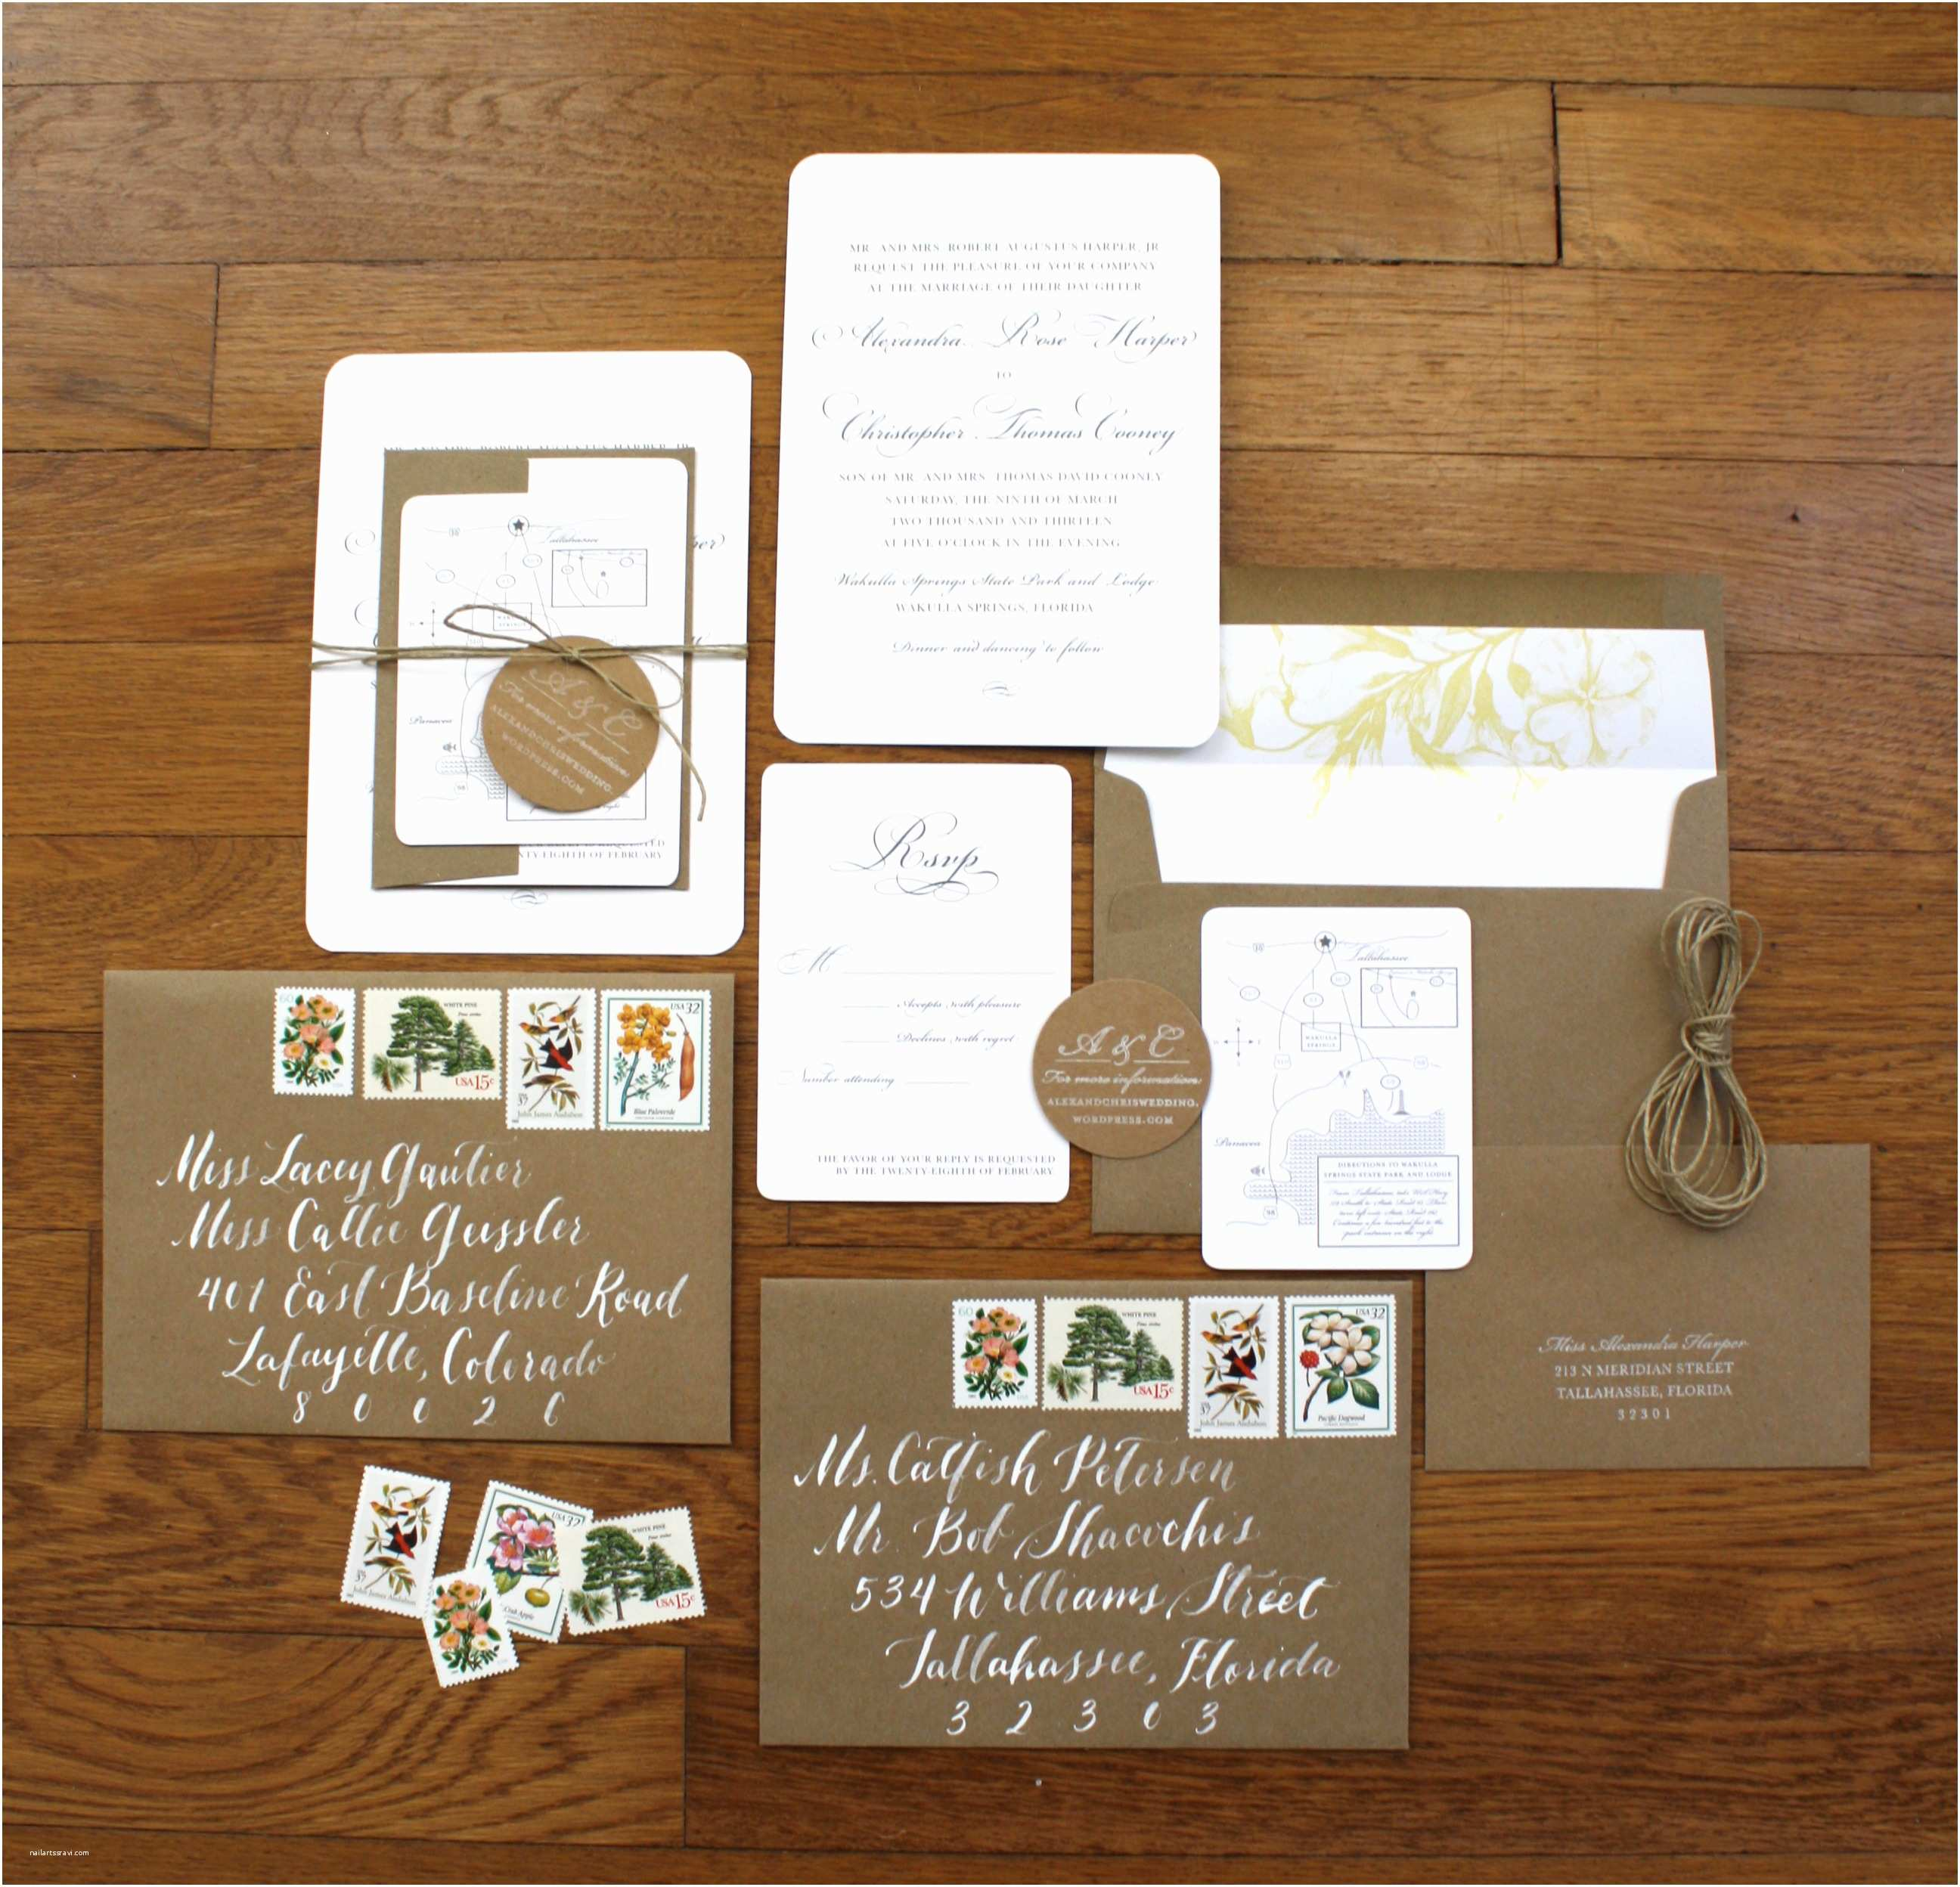 Stamps for Wedding Invitations Vintage Rubber Stamps for Wedding Invitation Ideas Stamps